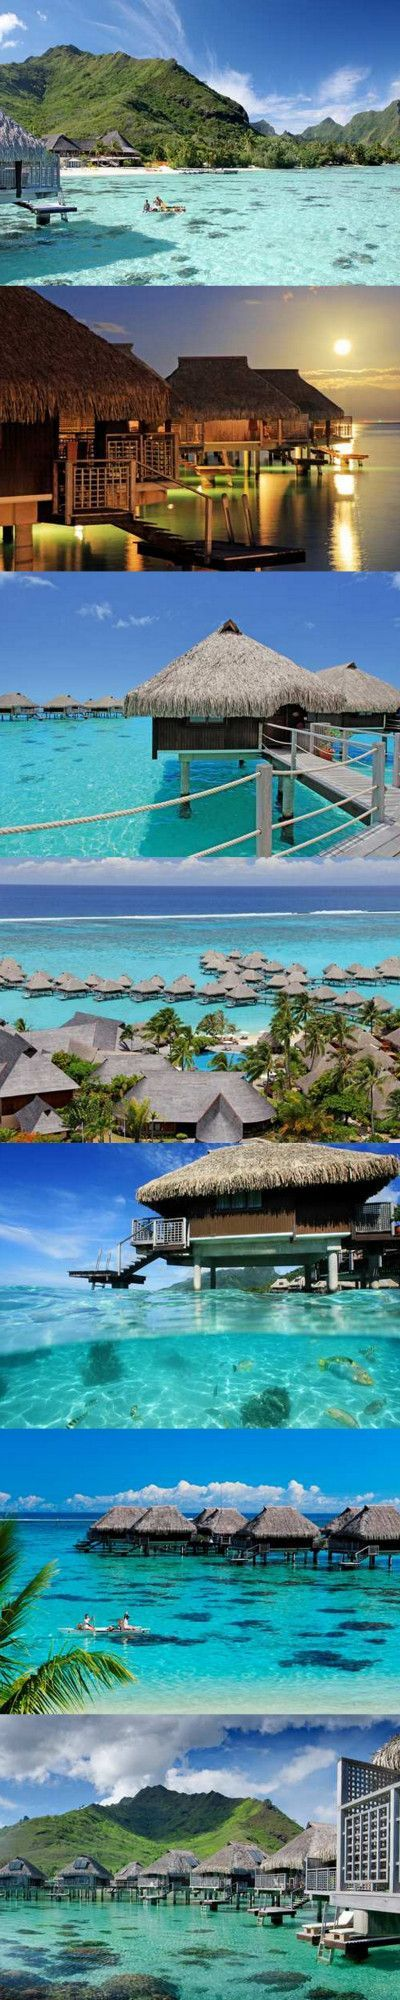 Hilton Moorea Lagoon Resort and Spa is located in the north of Moorea Island, one of the 118 islands in French Polynesia (French Polynesia is an overseas country of the French Republic – made up of several groups of Polynesian islands, the most famous island being Tahiti). Moorea is the second most populated after Tahiti.